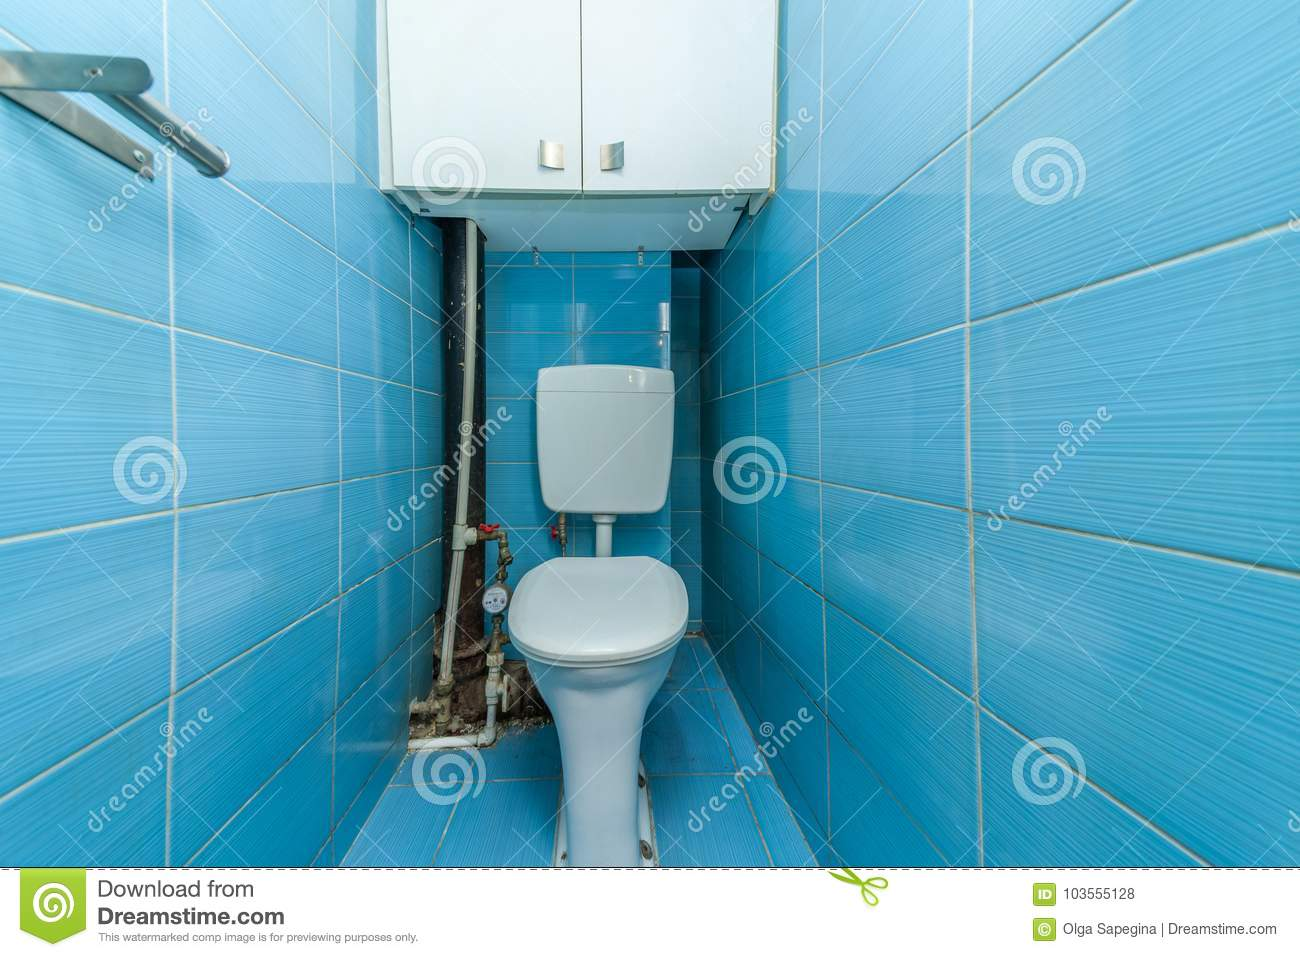 Restroom with toilet stock photo. Image of lavatory - 103555128